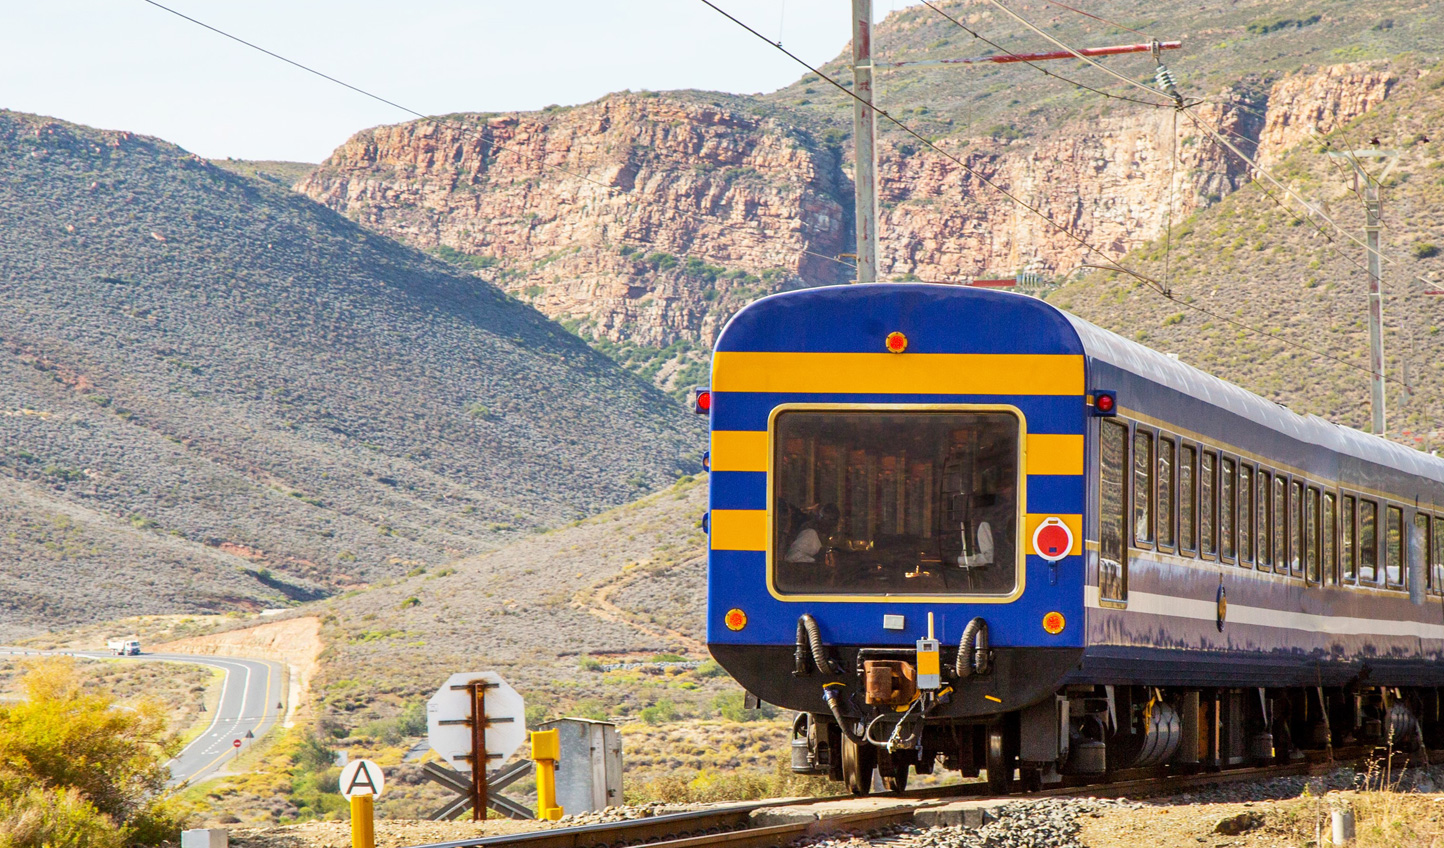 Journey down to Cape Town on the Blue Train